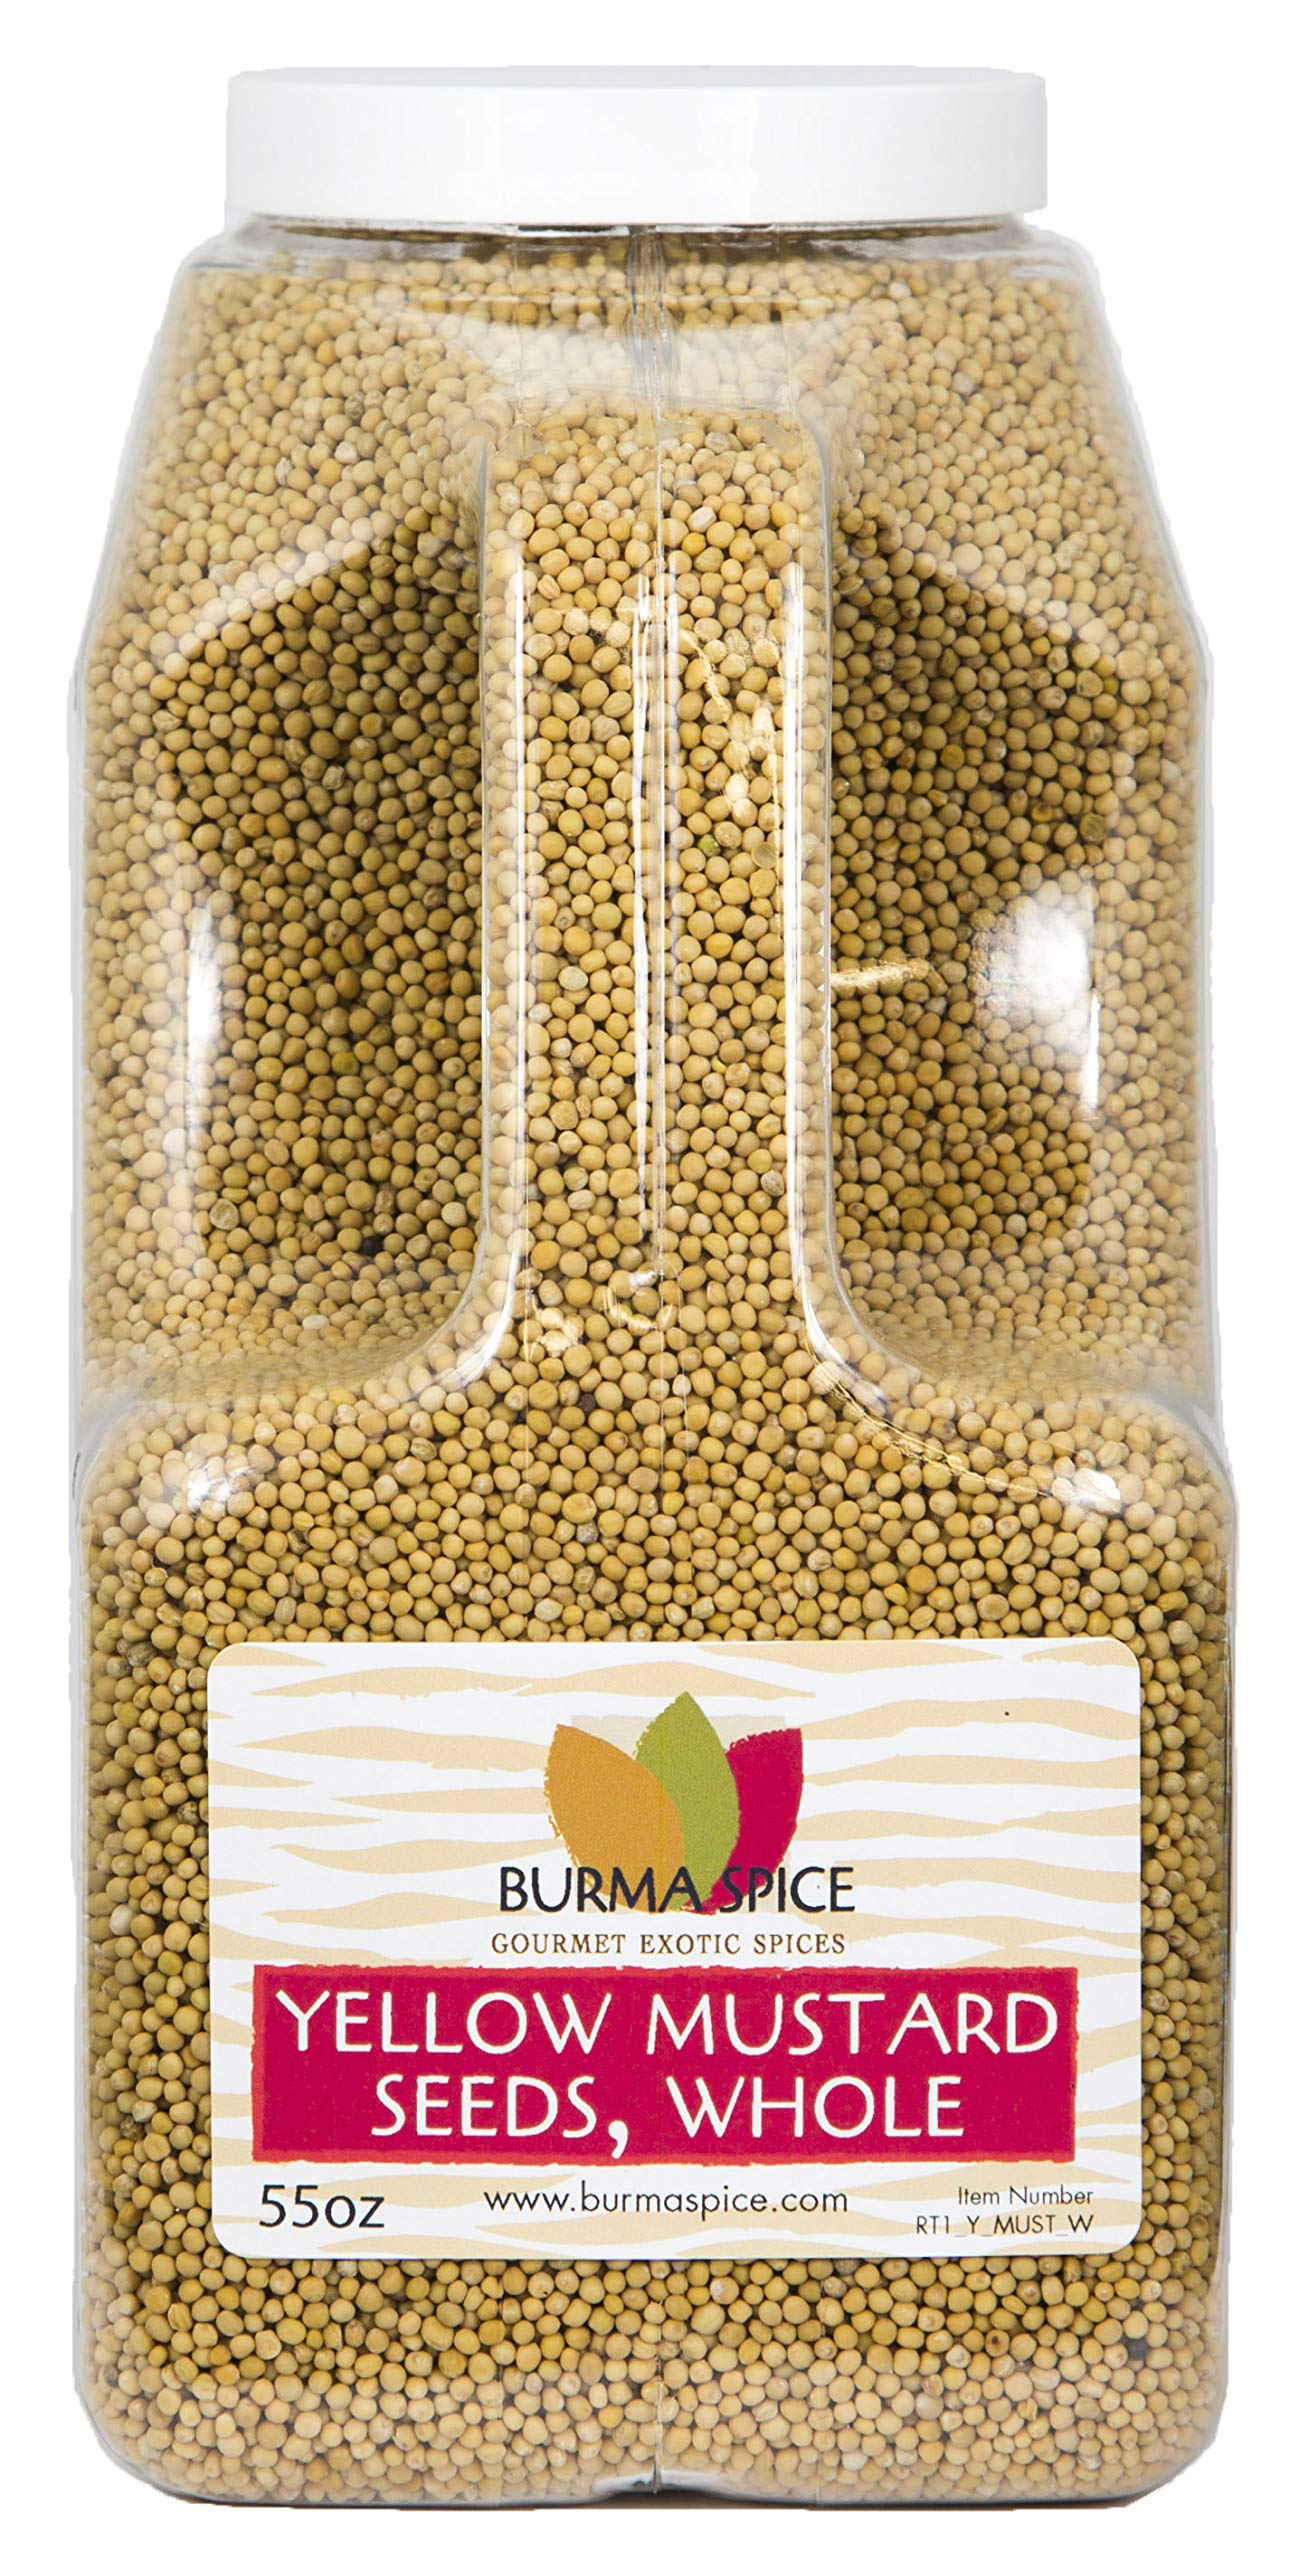 Yellow Mustard Seed : Whole, Dried, Spice, Herb, Seasoning, Indian Cuisine, Kosher (55oz.)